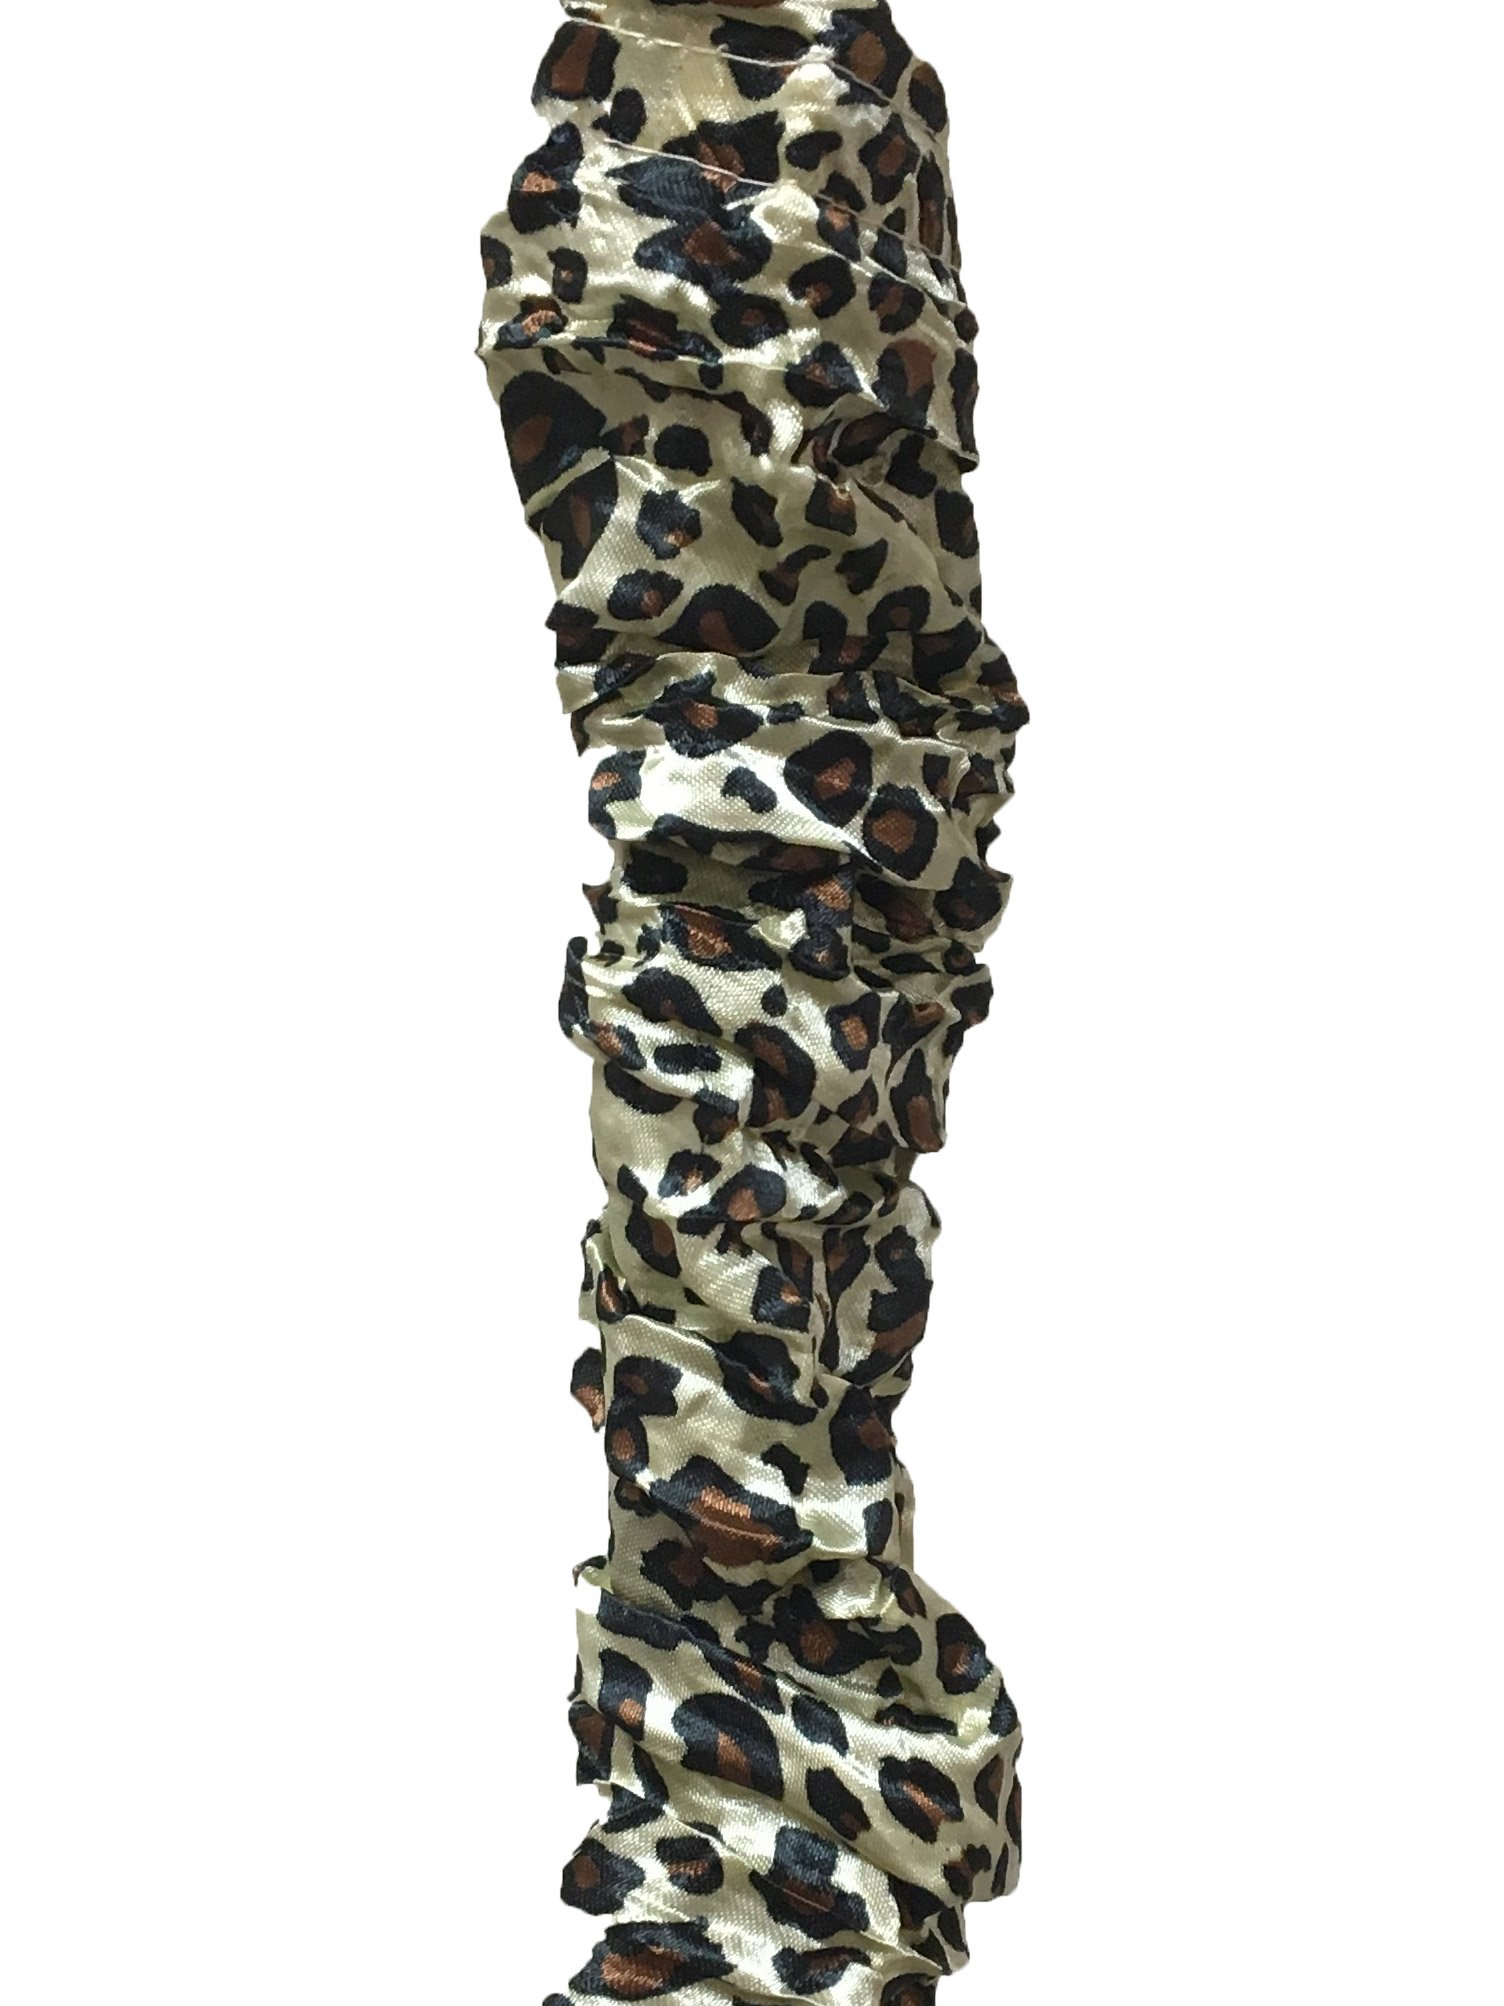 Royal Designs Leopard Animal Print Cord & Chain Cover- 4 Feet- Silk-Type Fabric Touch Fastener - Use for Chandelier Lighting Wires (CC-28-LPBR)